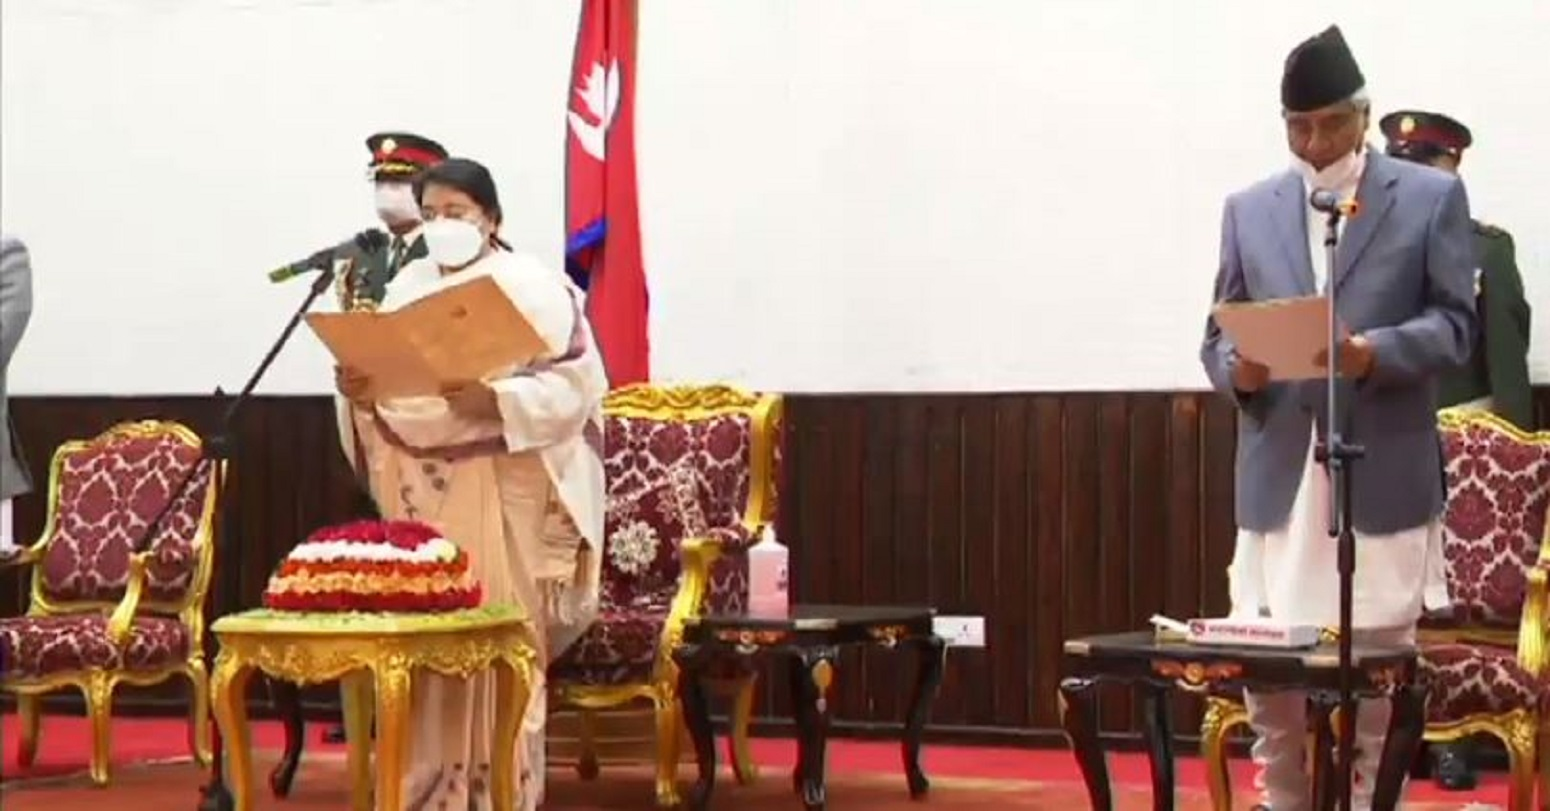 President revises appointment notice, PM Deuba takes oath of office